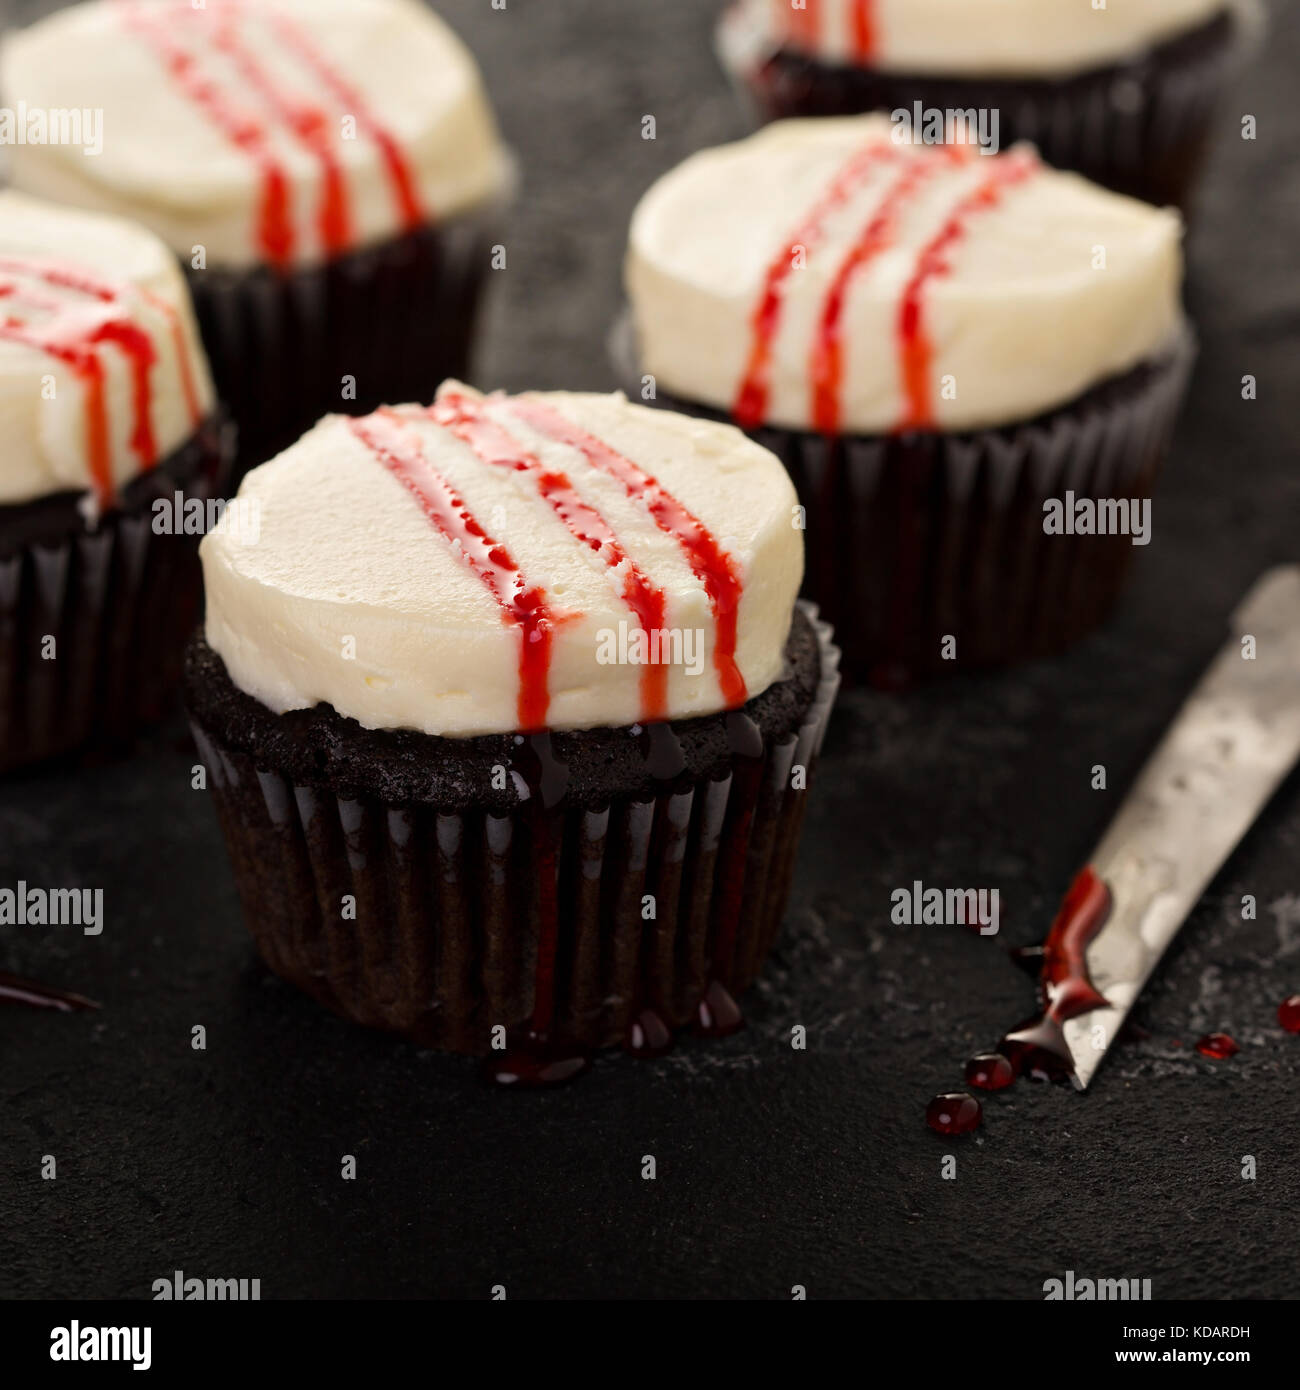 Spooky Halloween themed cupcakes with fake blood - Stock Image